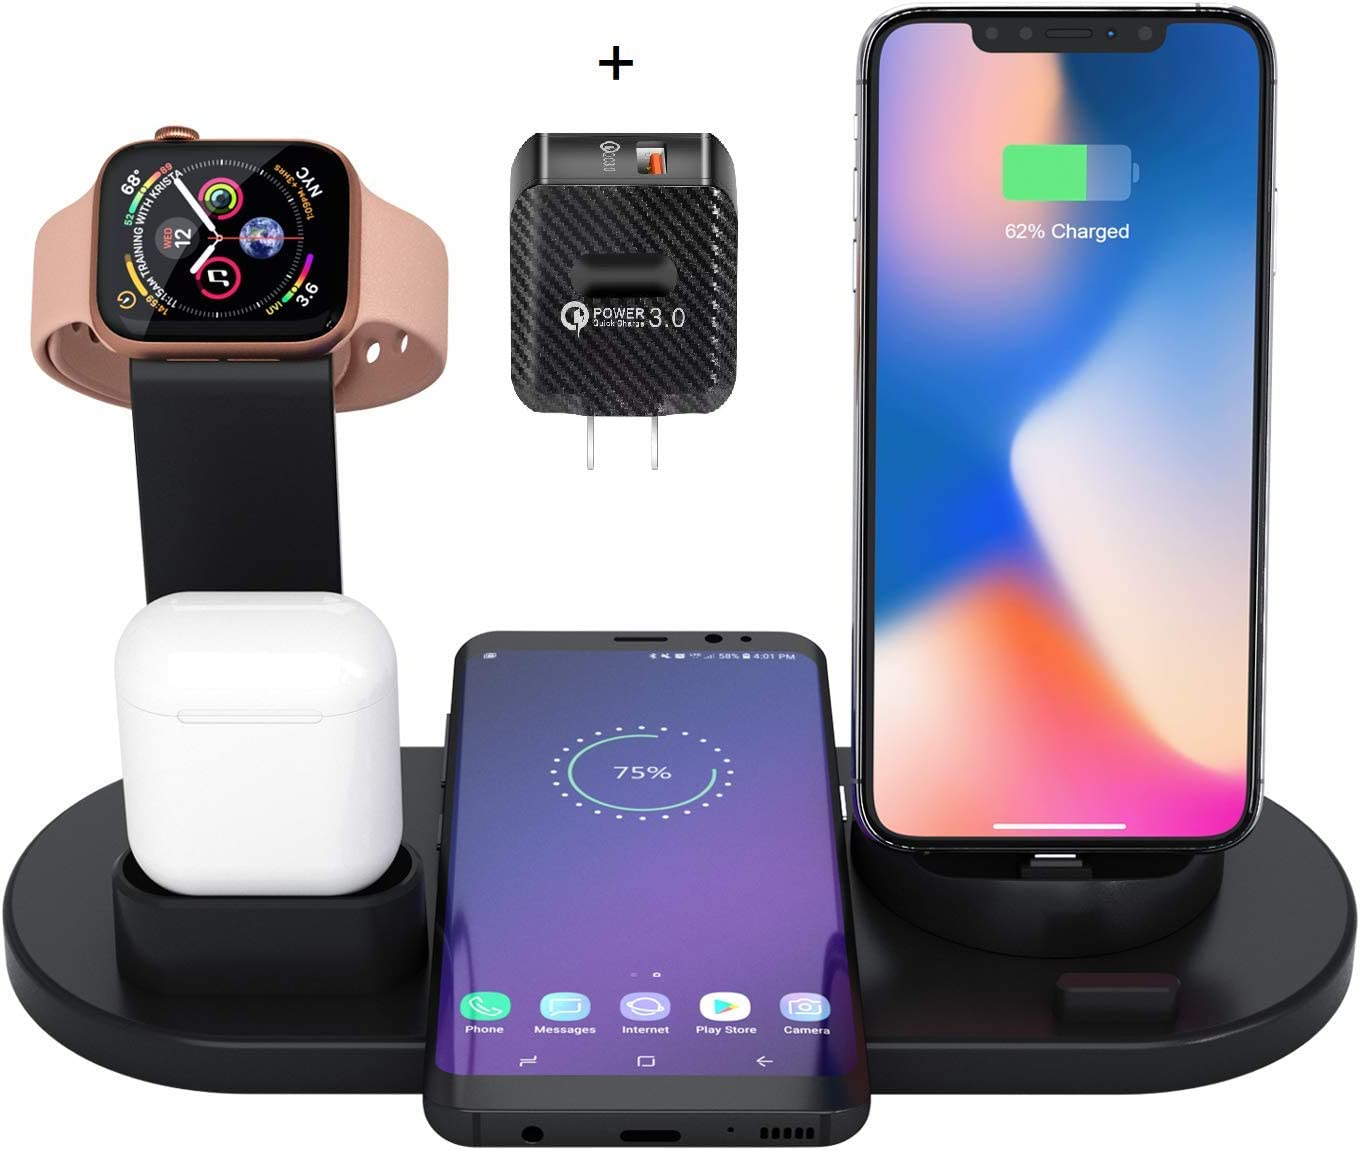 [Newest 2020] Wireless Charger 4 in 1 Charging Station - Upgraded Fast Wireless Charging Stand Compatible with Phone XI/XI pro/X/XS/XR/Xs Max/8/8 Plus, Smart Watches, Pods and Android Devices (Black)